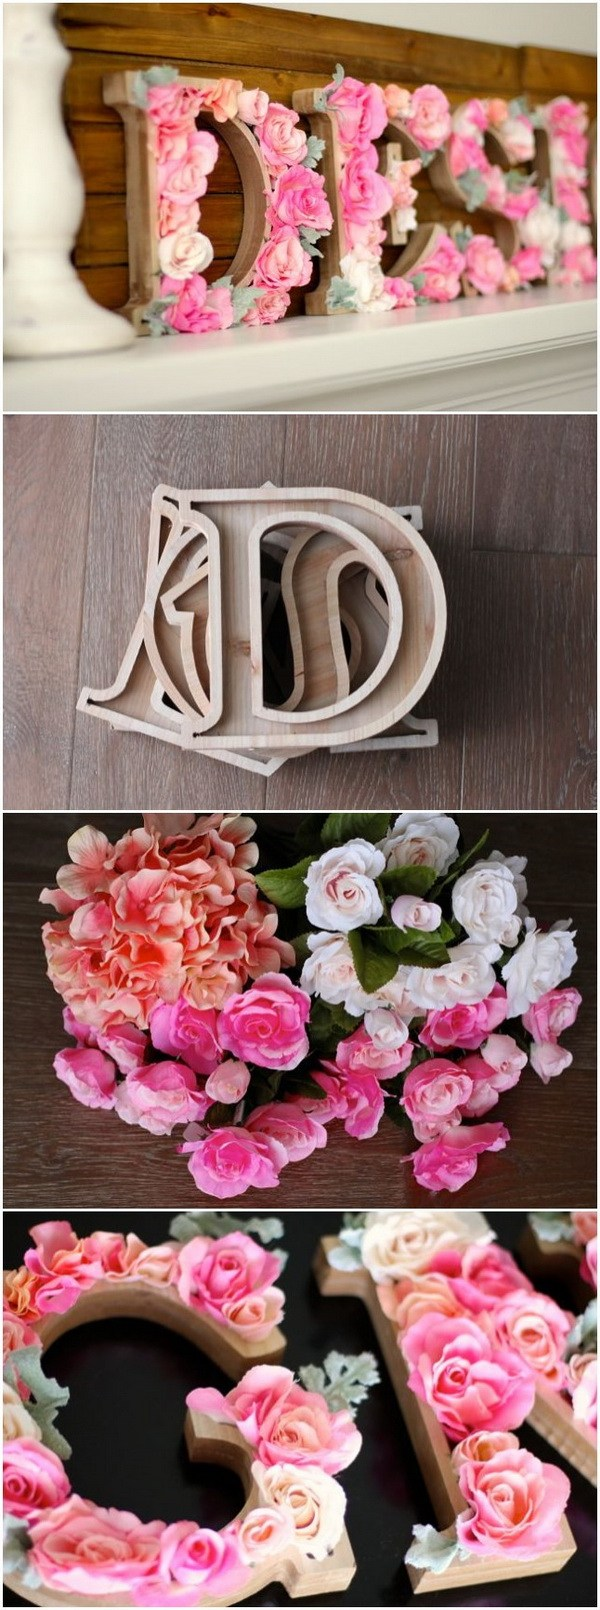 DIY Rustic Letters With Flowers For Wall Decoration.